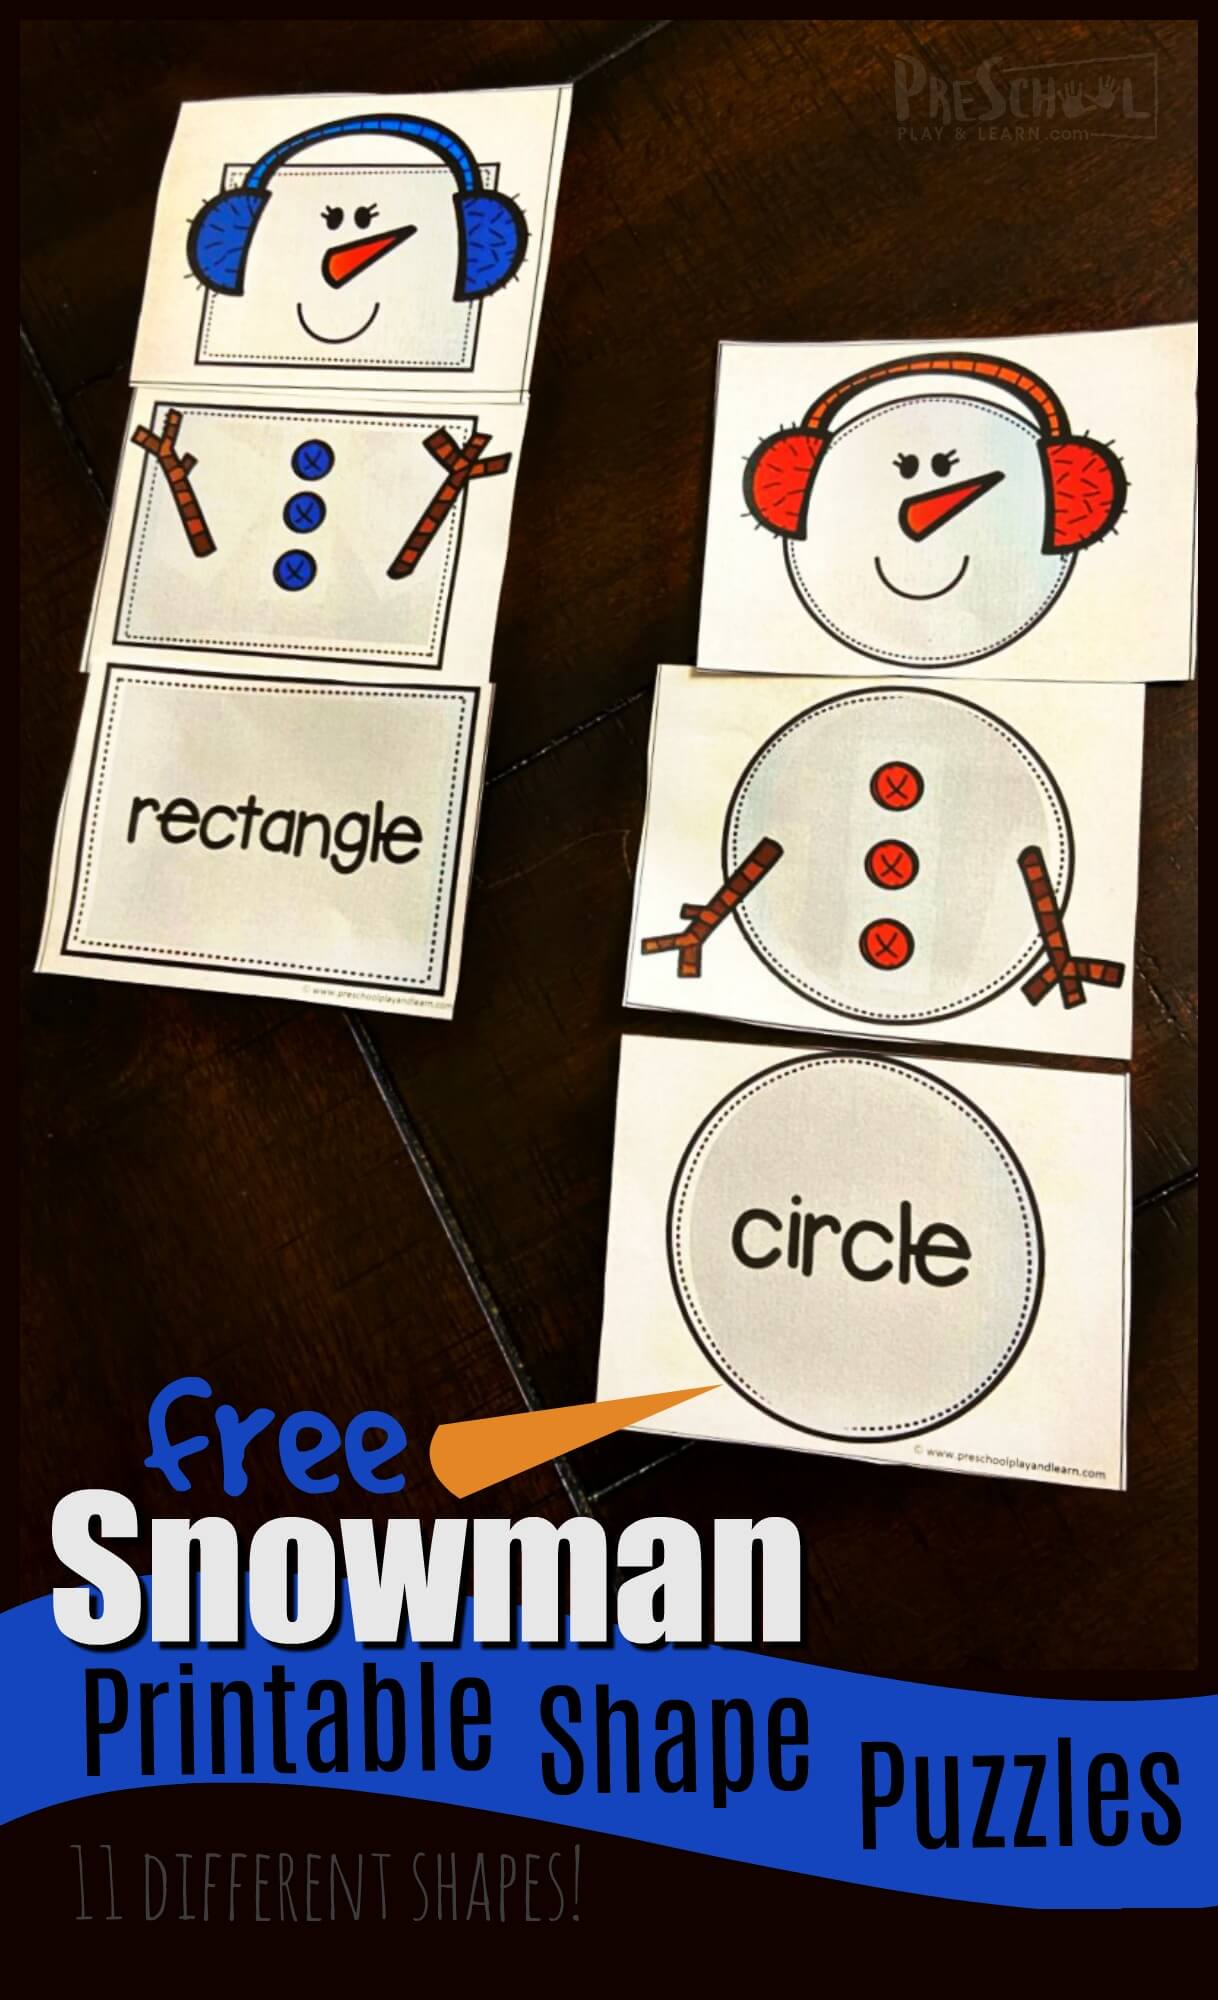 Do you want to build a snowman printable makes practicing shape recognition fun for toddler, preschool, pre-k, and kindergarten age children.  Use these super cute, 3-part shape puzzles to match 11 common shapes to make these happy snowman friends. Simply download pdf file with free printable Snowman Printables and you are ready for a hands-on winter math activities for preschoolers.